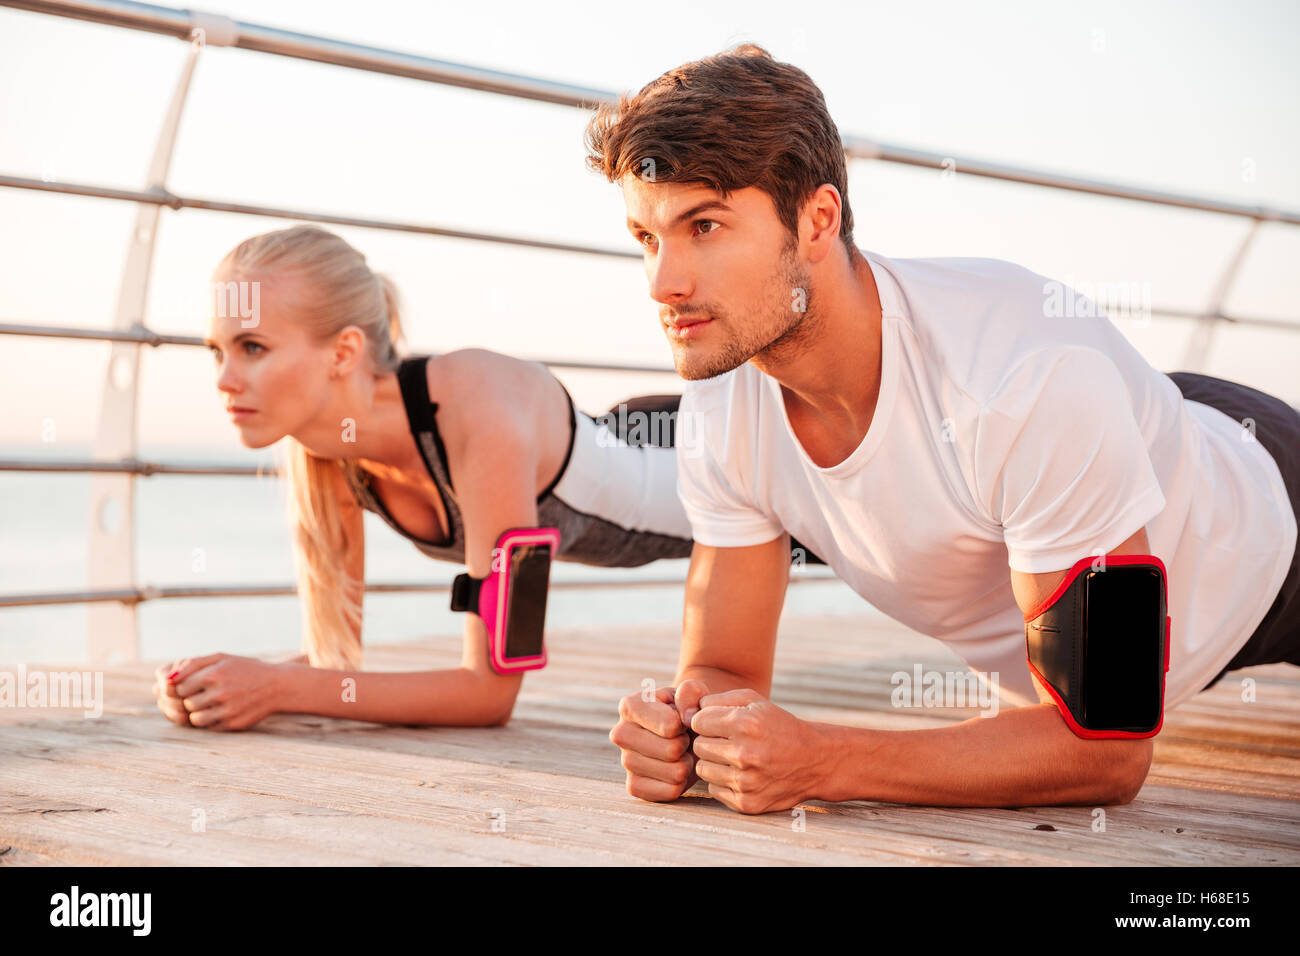 Close up of a young sports woman and man doing plank exercise together outdoors at the pier - Stock Image